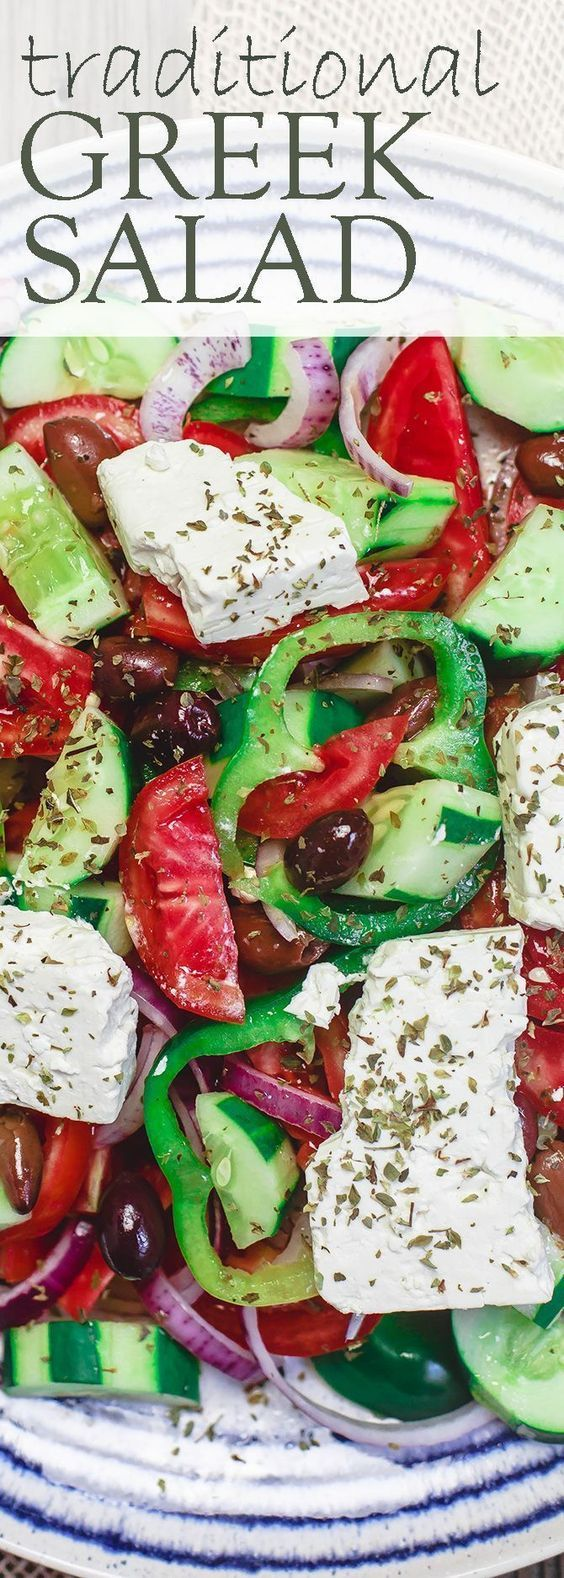 Traditional Greek Salad Recipe | The Mediterranean Dish. Simple, authentic Greek salad with juicy tomatoes, cucumbers, green peppers, creamy feta cheese and olives. Seasoned with oregano and dressed in extra virgin olive oil. A must try from TheMediterran